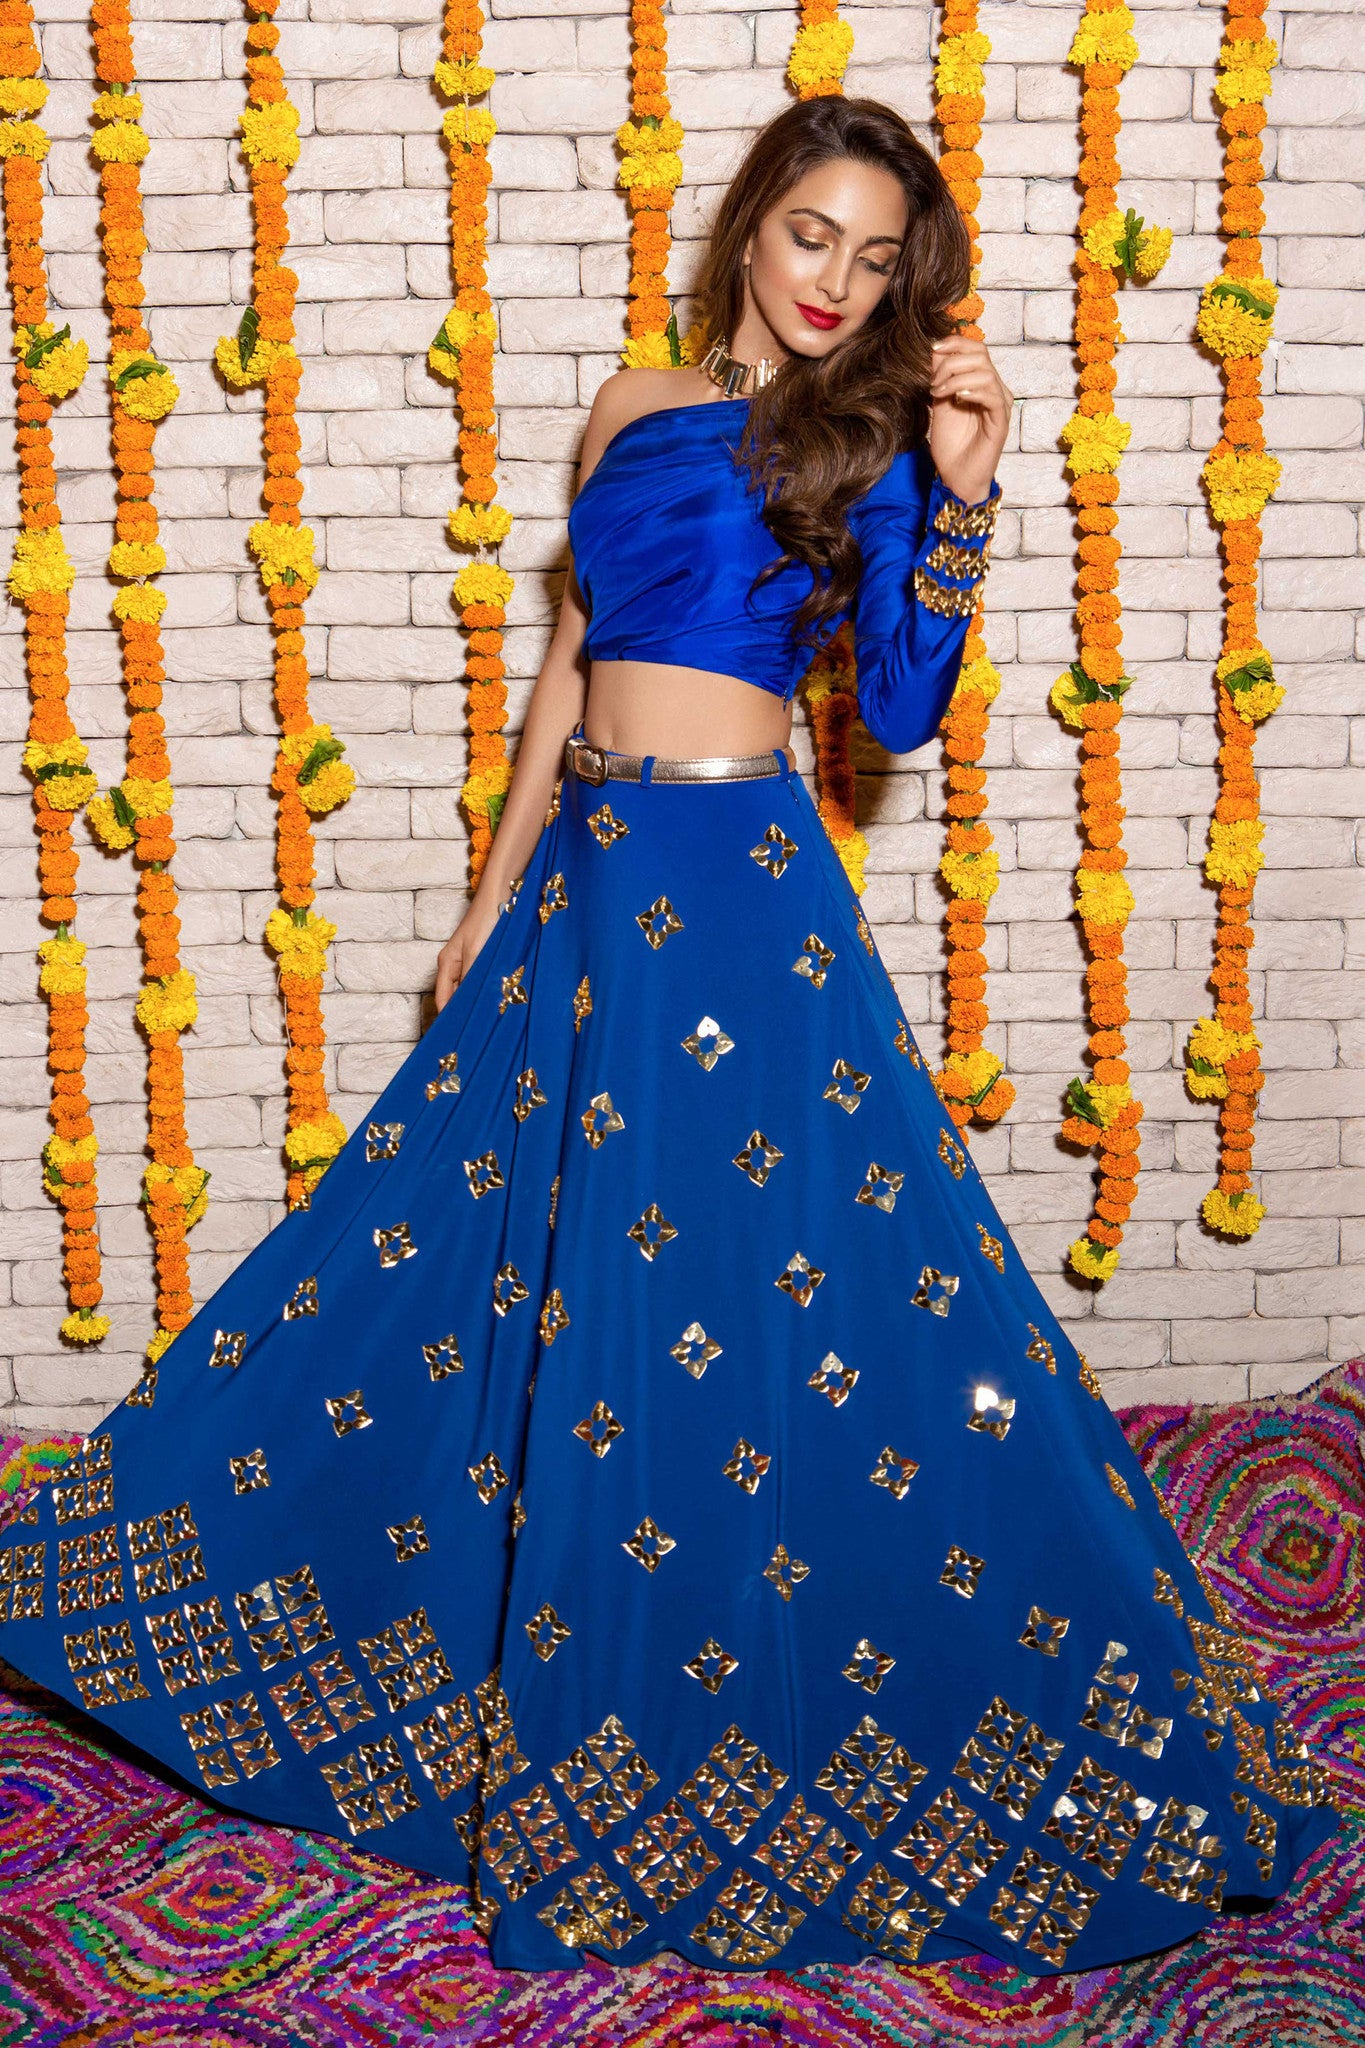 Blue Neoprene Lehenga Full